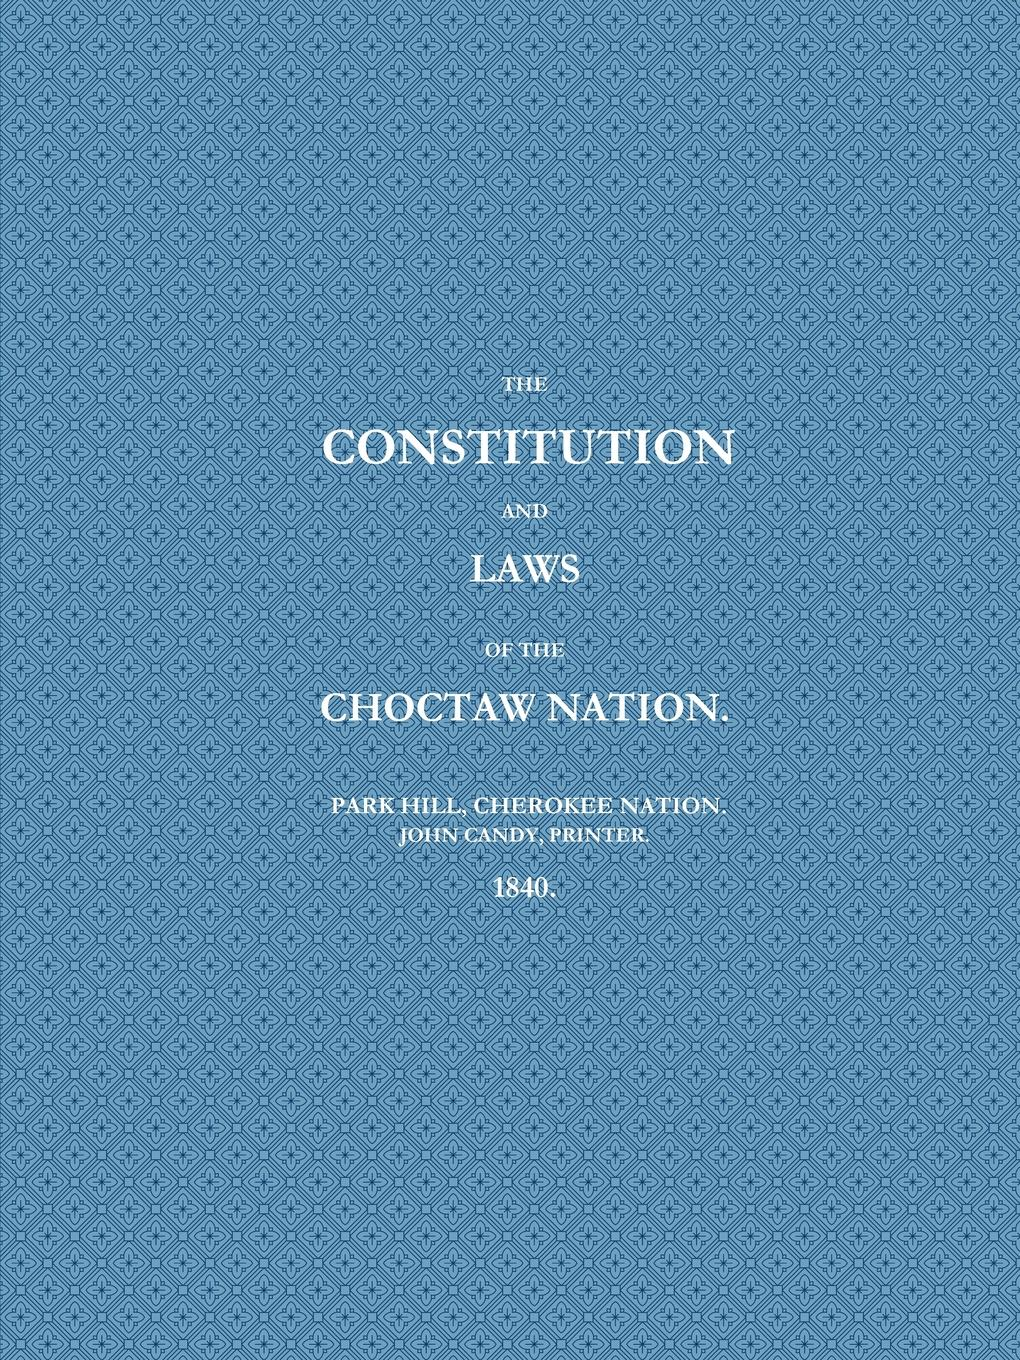 PRINTER PARK HILL CHEROKEE JOHN CANDY THE CONSTITUTION AND LAWS OF THE CHOCTAW NATION (1840) printer park hill cherokee john candy the constitution and laws of the choctaw nation 1840